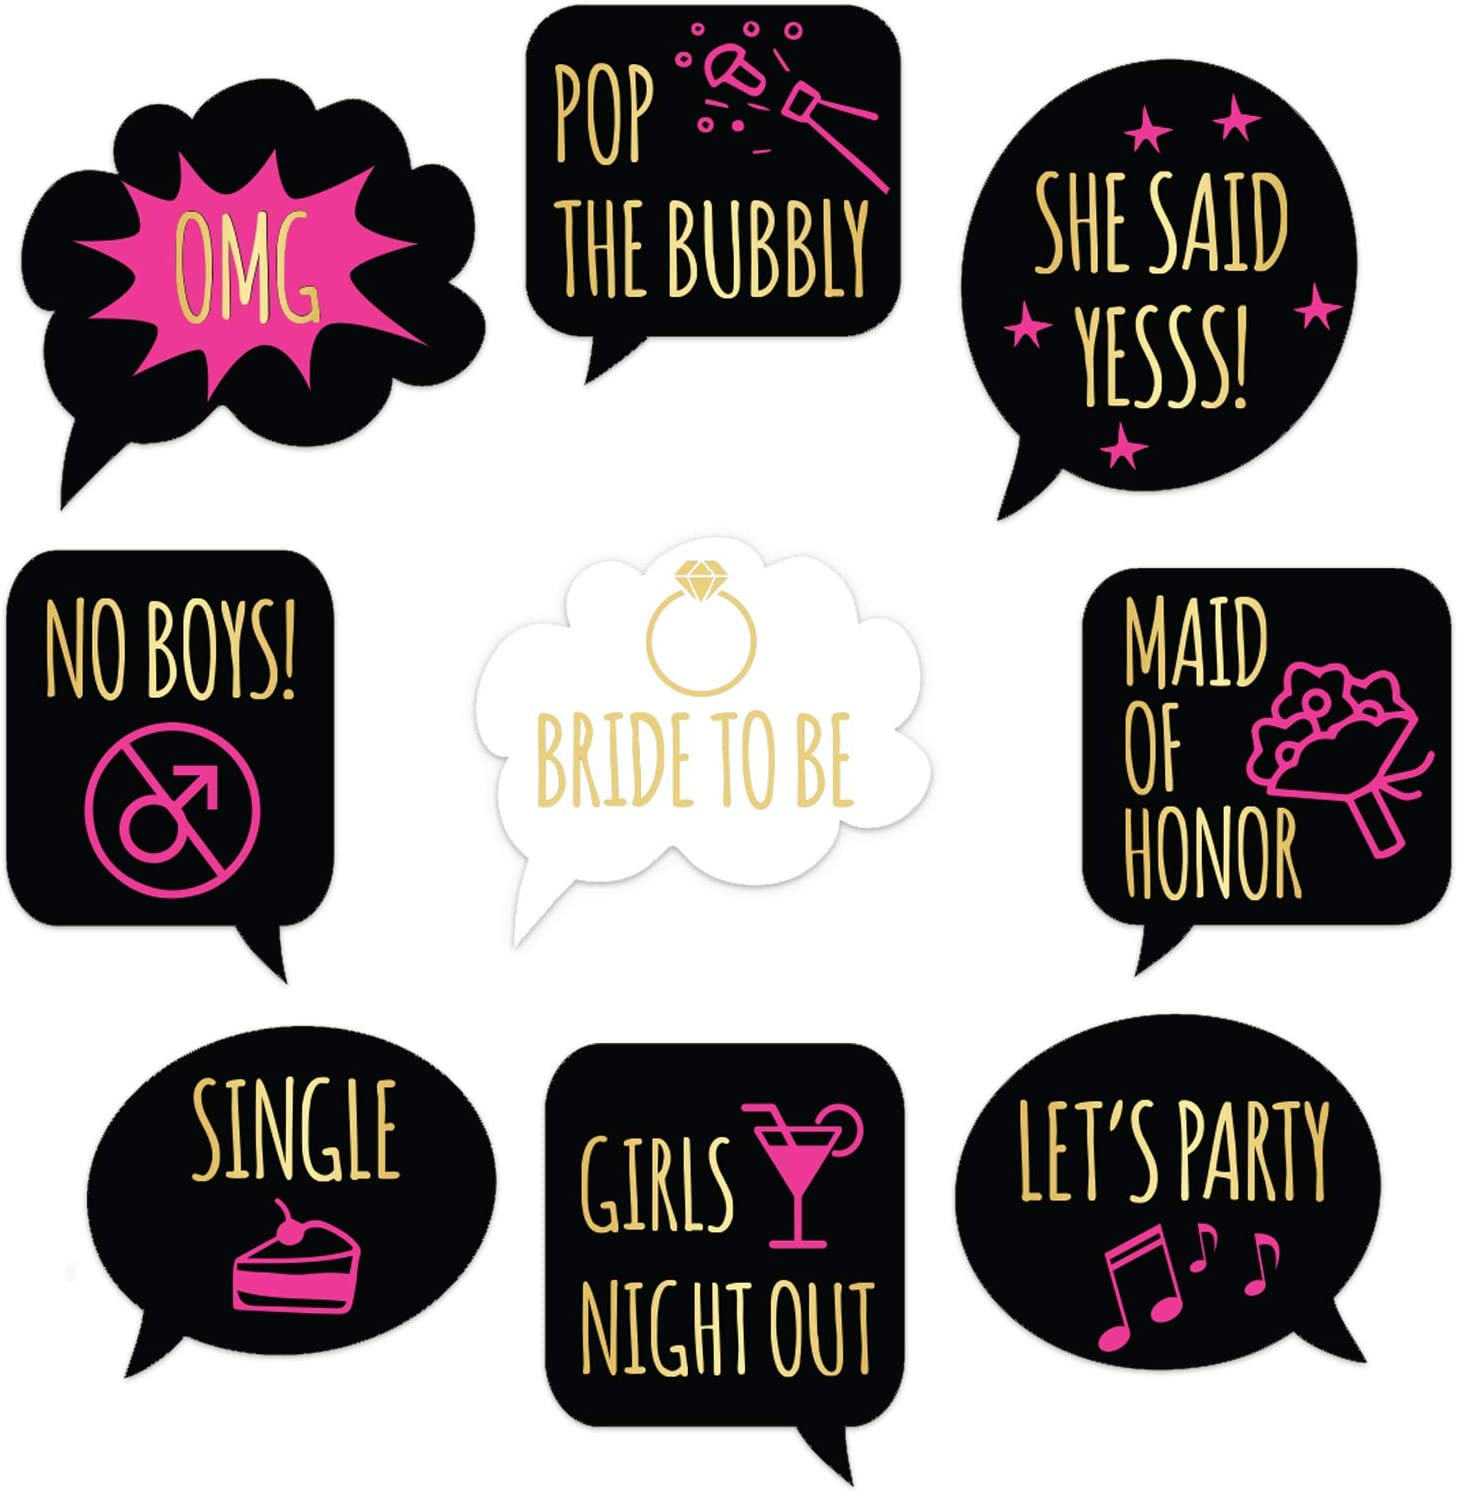 wine and cheese party wine party invitation seal wine glass decals drinks sticker wine tasting cocktail party 30 Wine Glass stickers